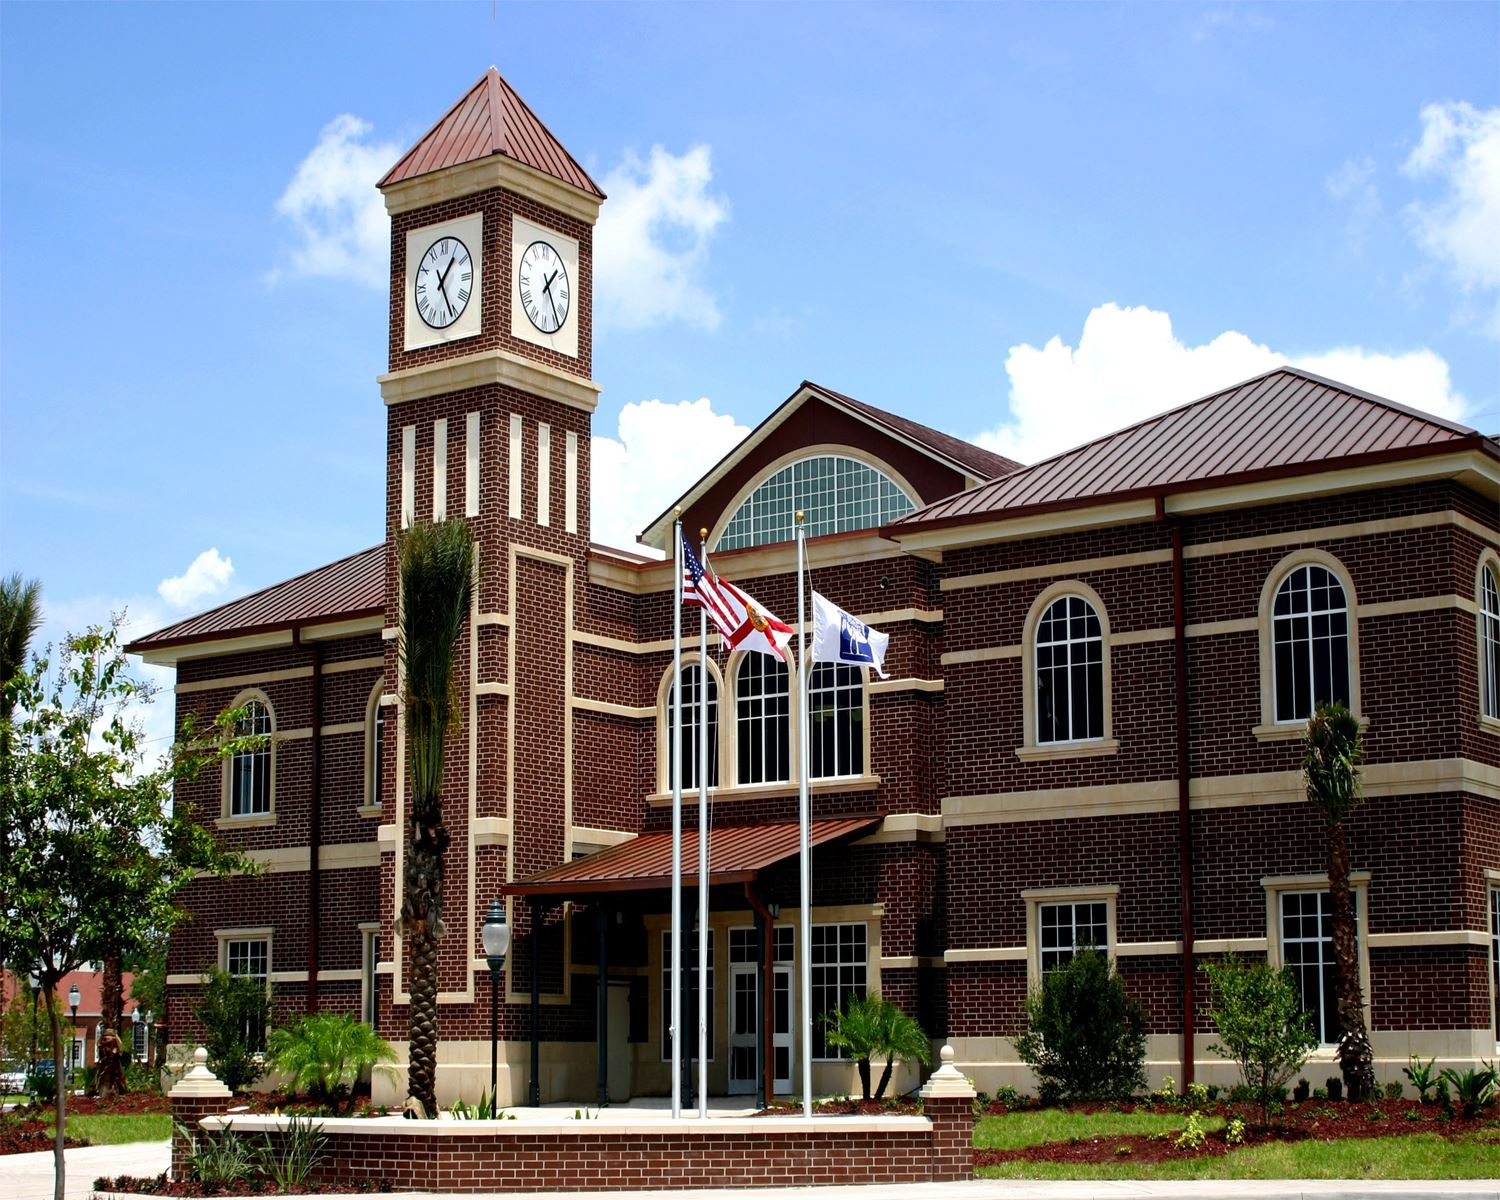 Park Station exterior with clock tower and flag poles